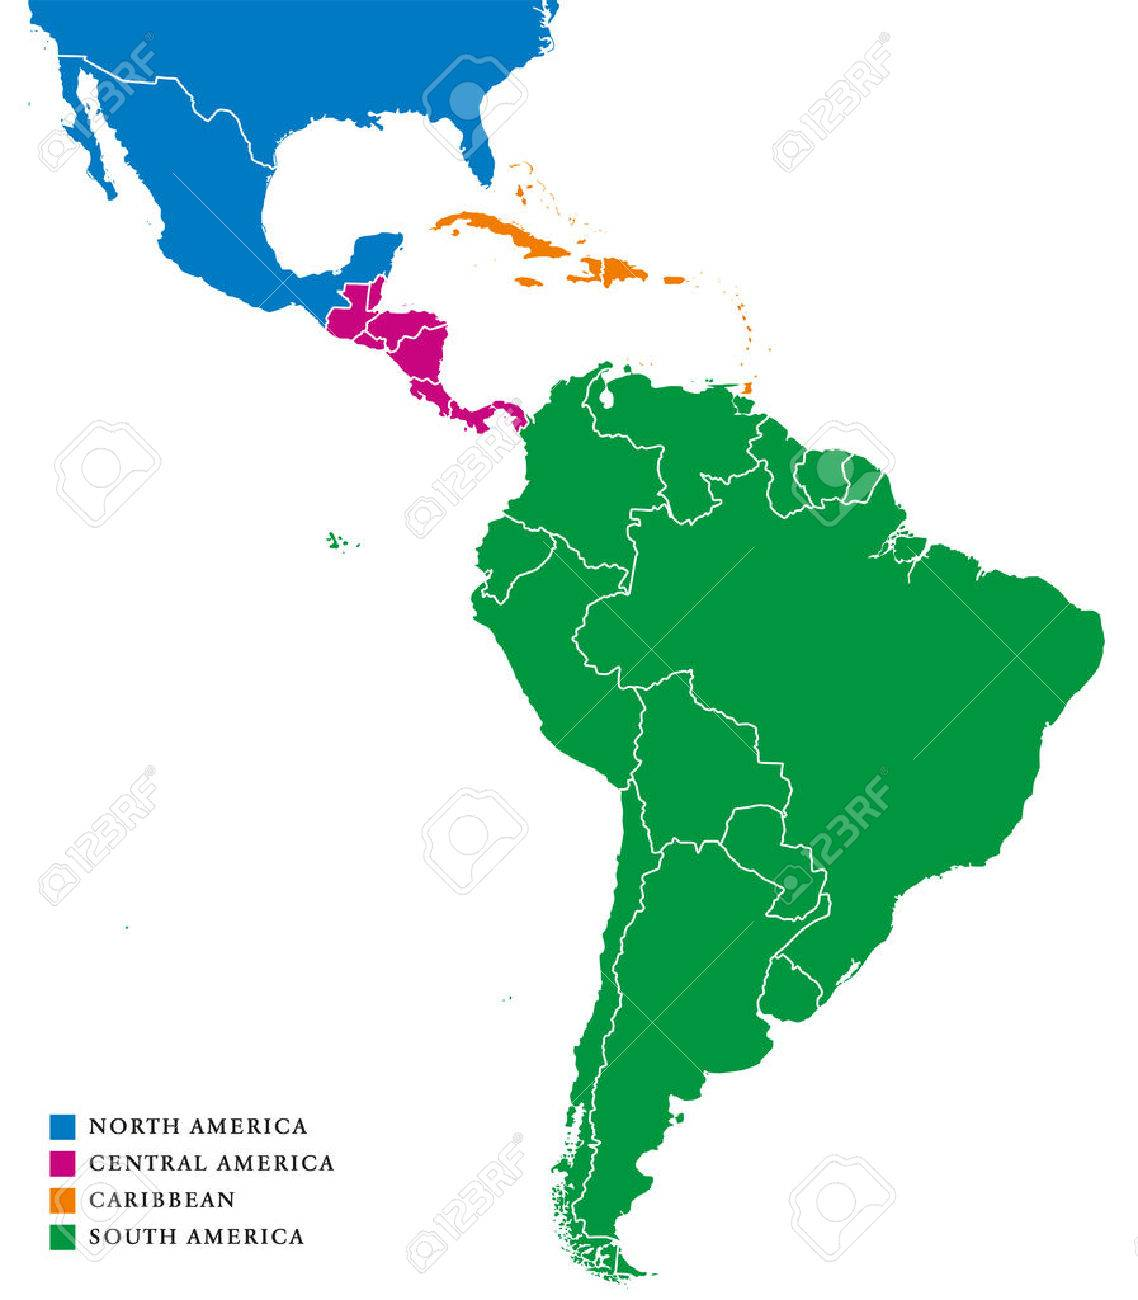 Latin america subregions map the subregions caribbean north latin america subregions map the subregions caribbean north central and south america in gumiabroncs Images